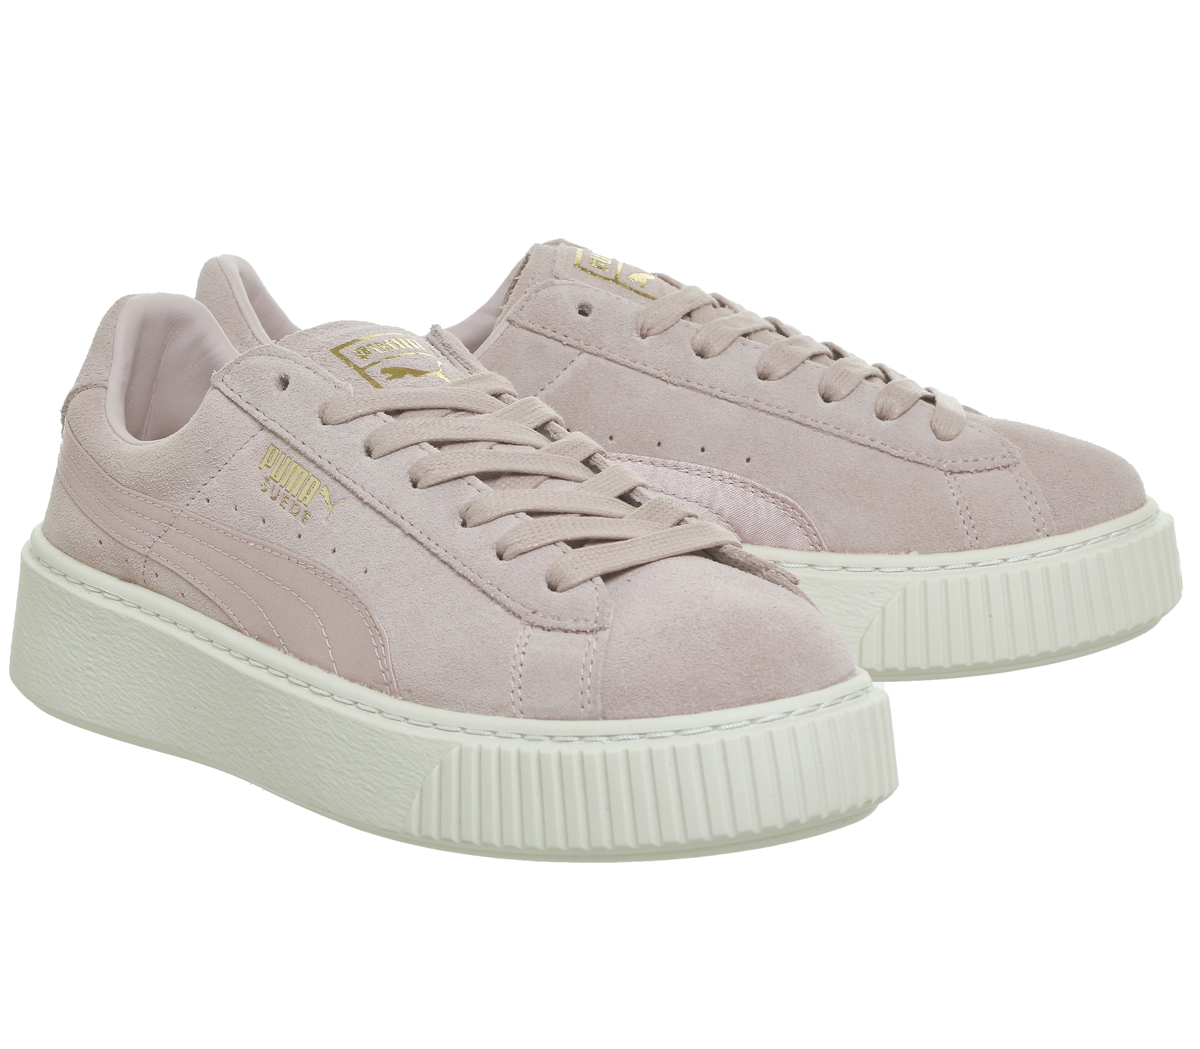 buy popular 4052d f2df0 Details about Womens Puma Suede Platform Trainers SILVER PINK GOLD SATIN  Trainers Shoes